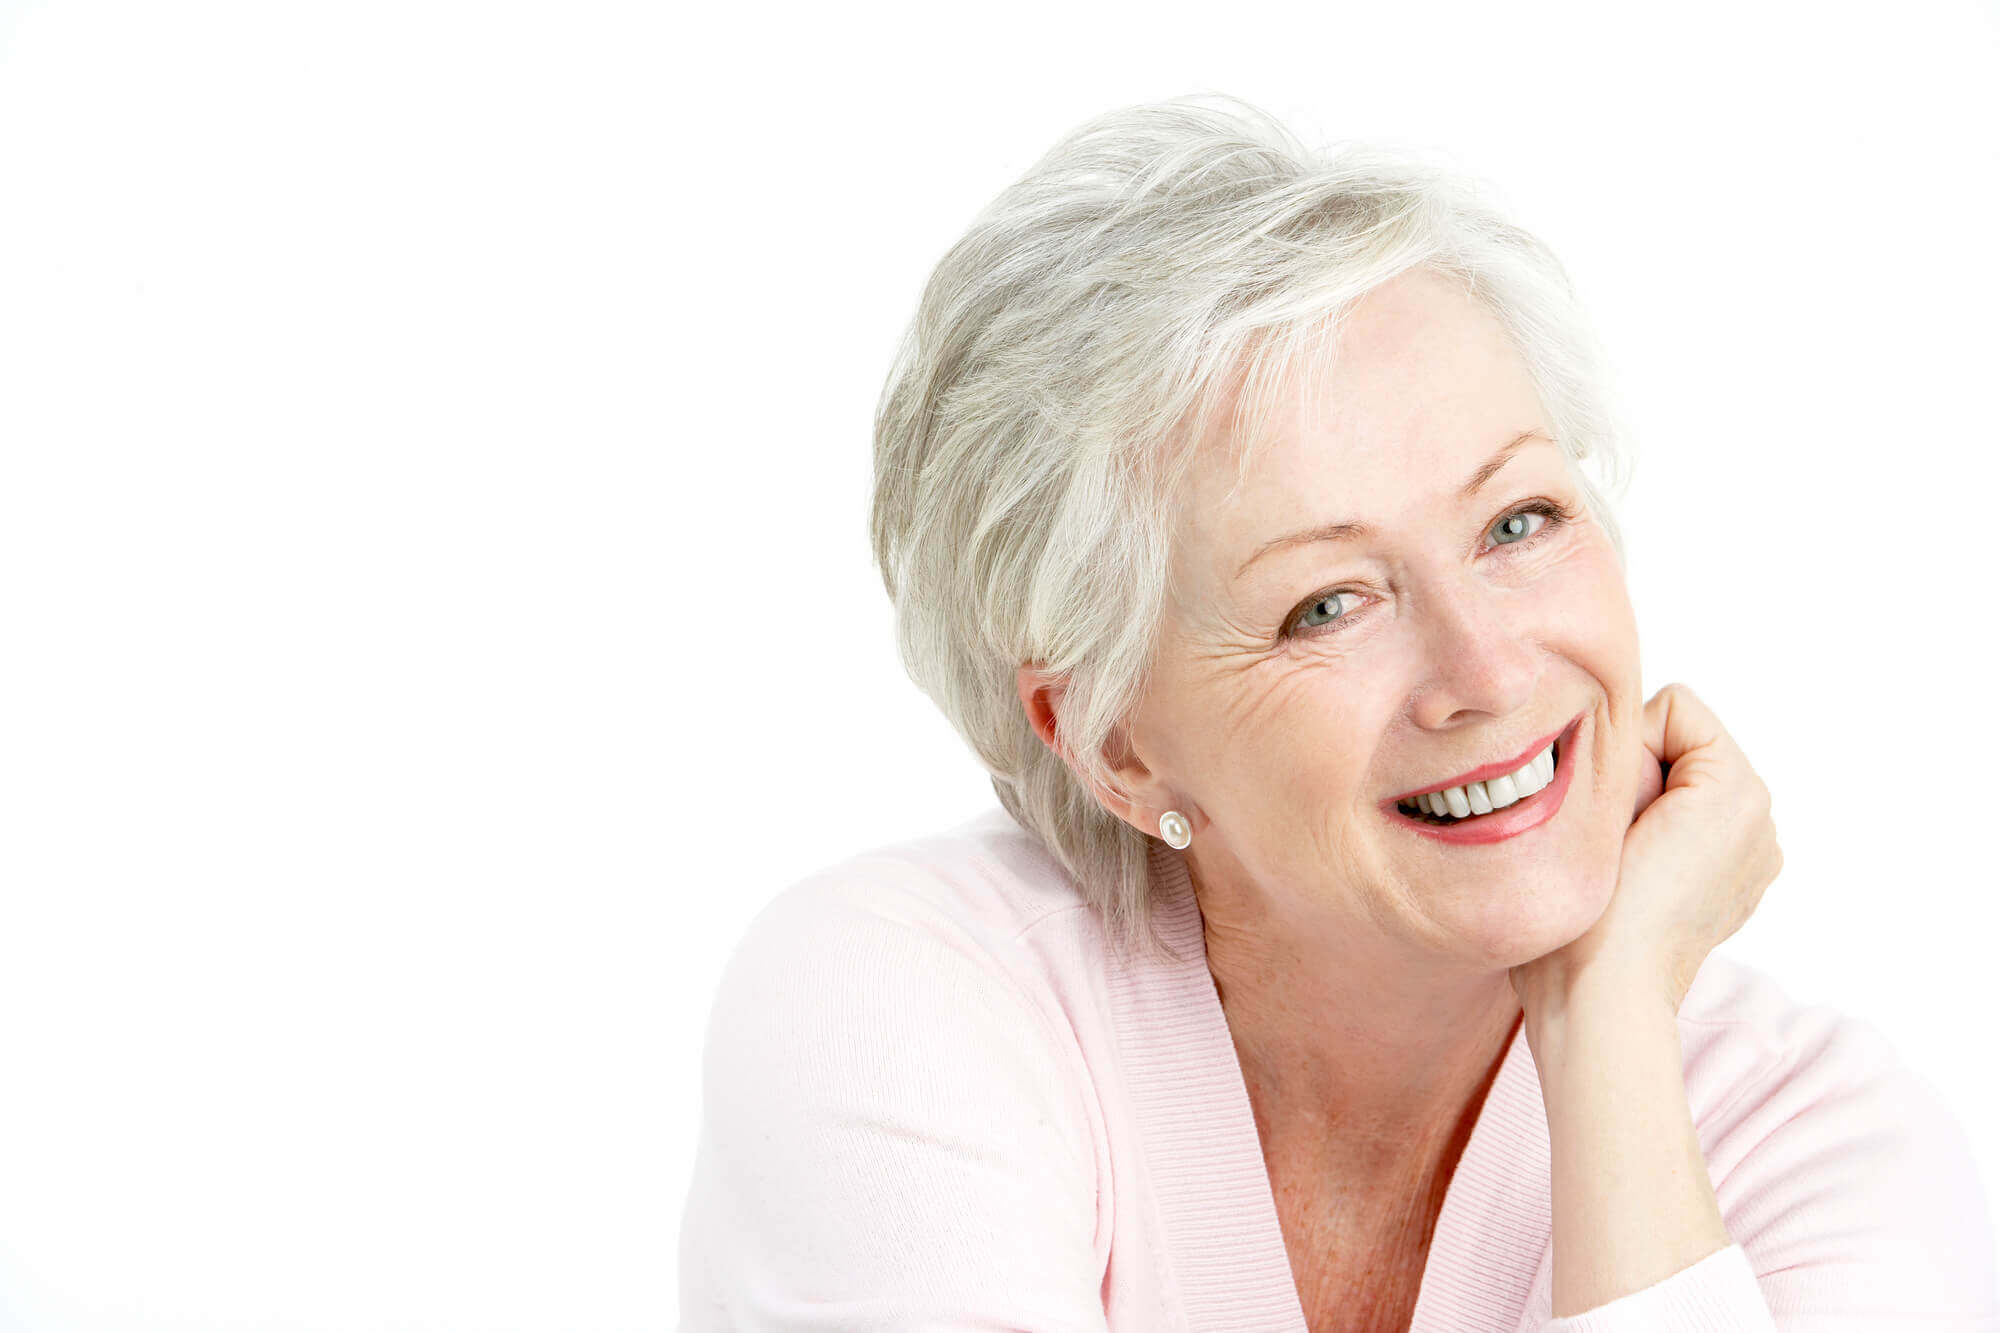 where can i get dental implants in north miami?